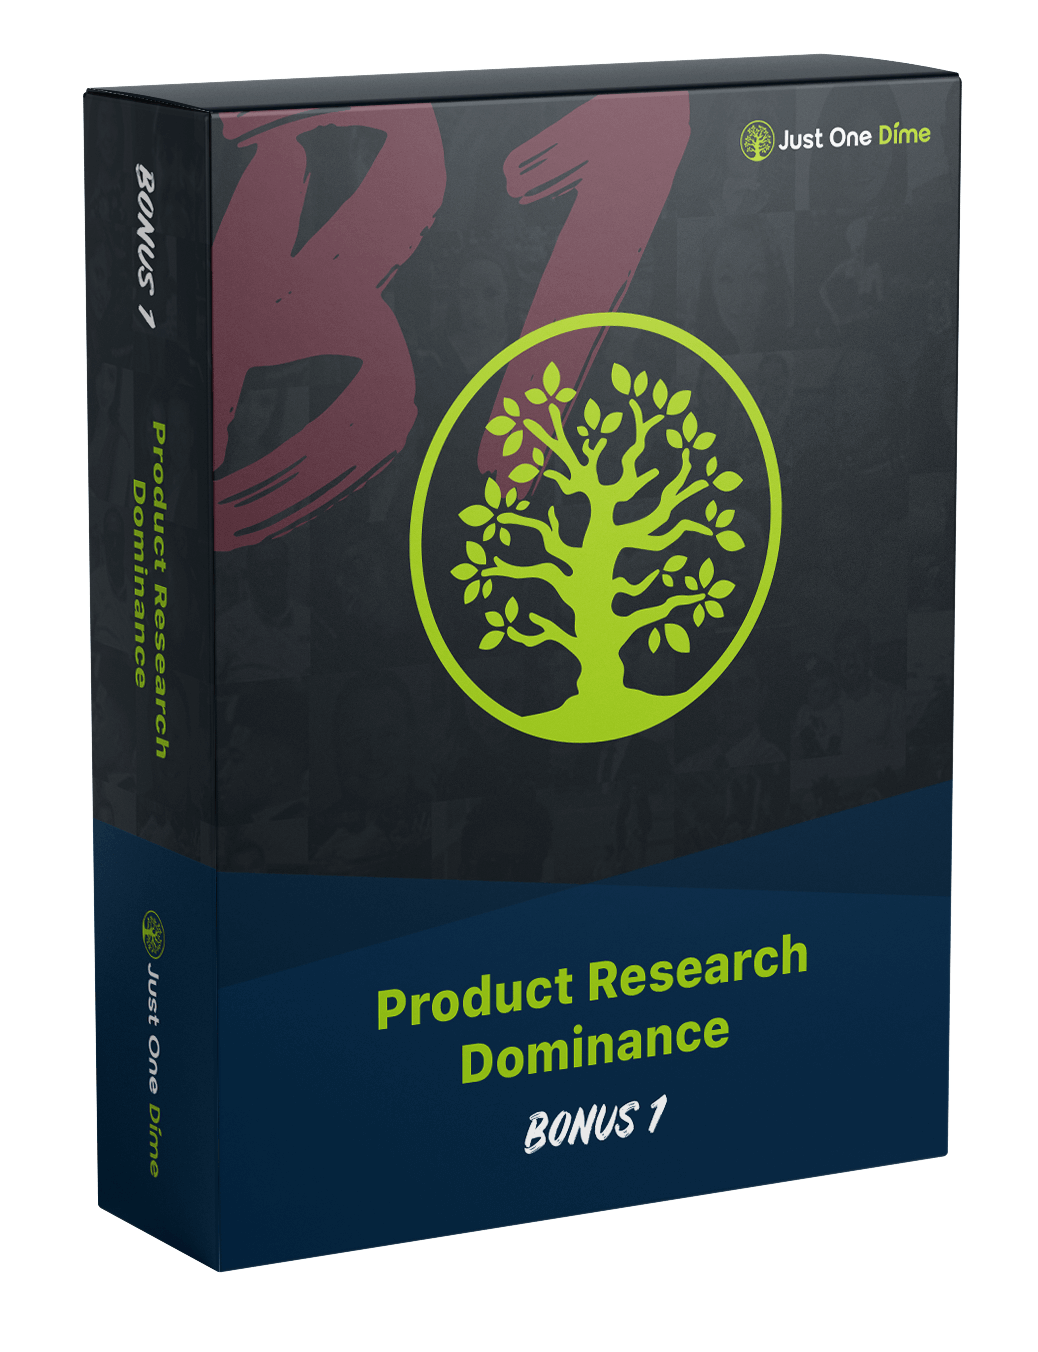 Product research dominance | Just One Dime